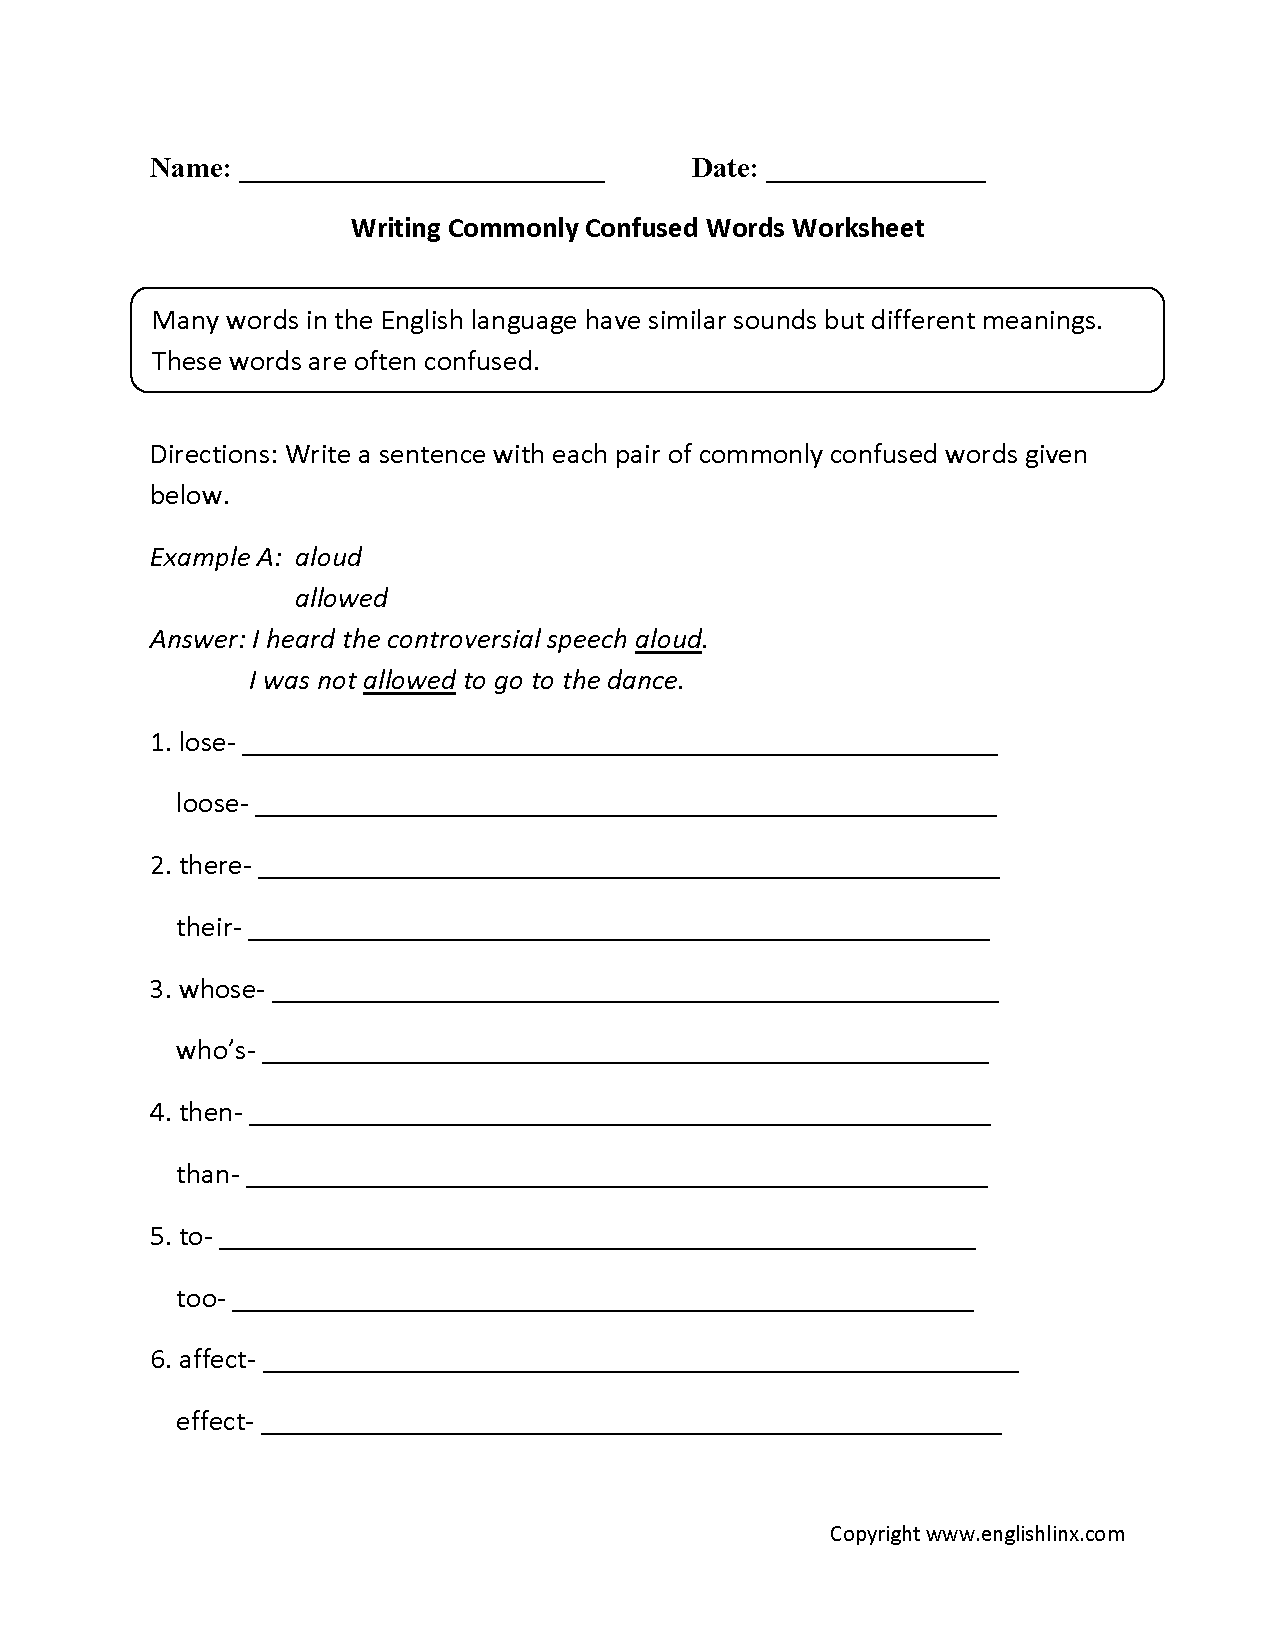 Worksheets Commonly Misused Words Worksheet misused words worksheet commonly by ruthie66 teaching resources tes